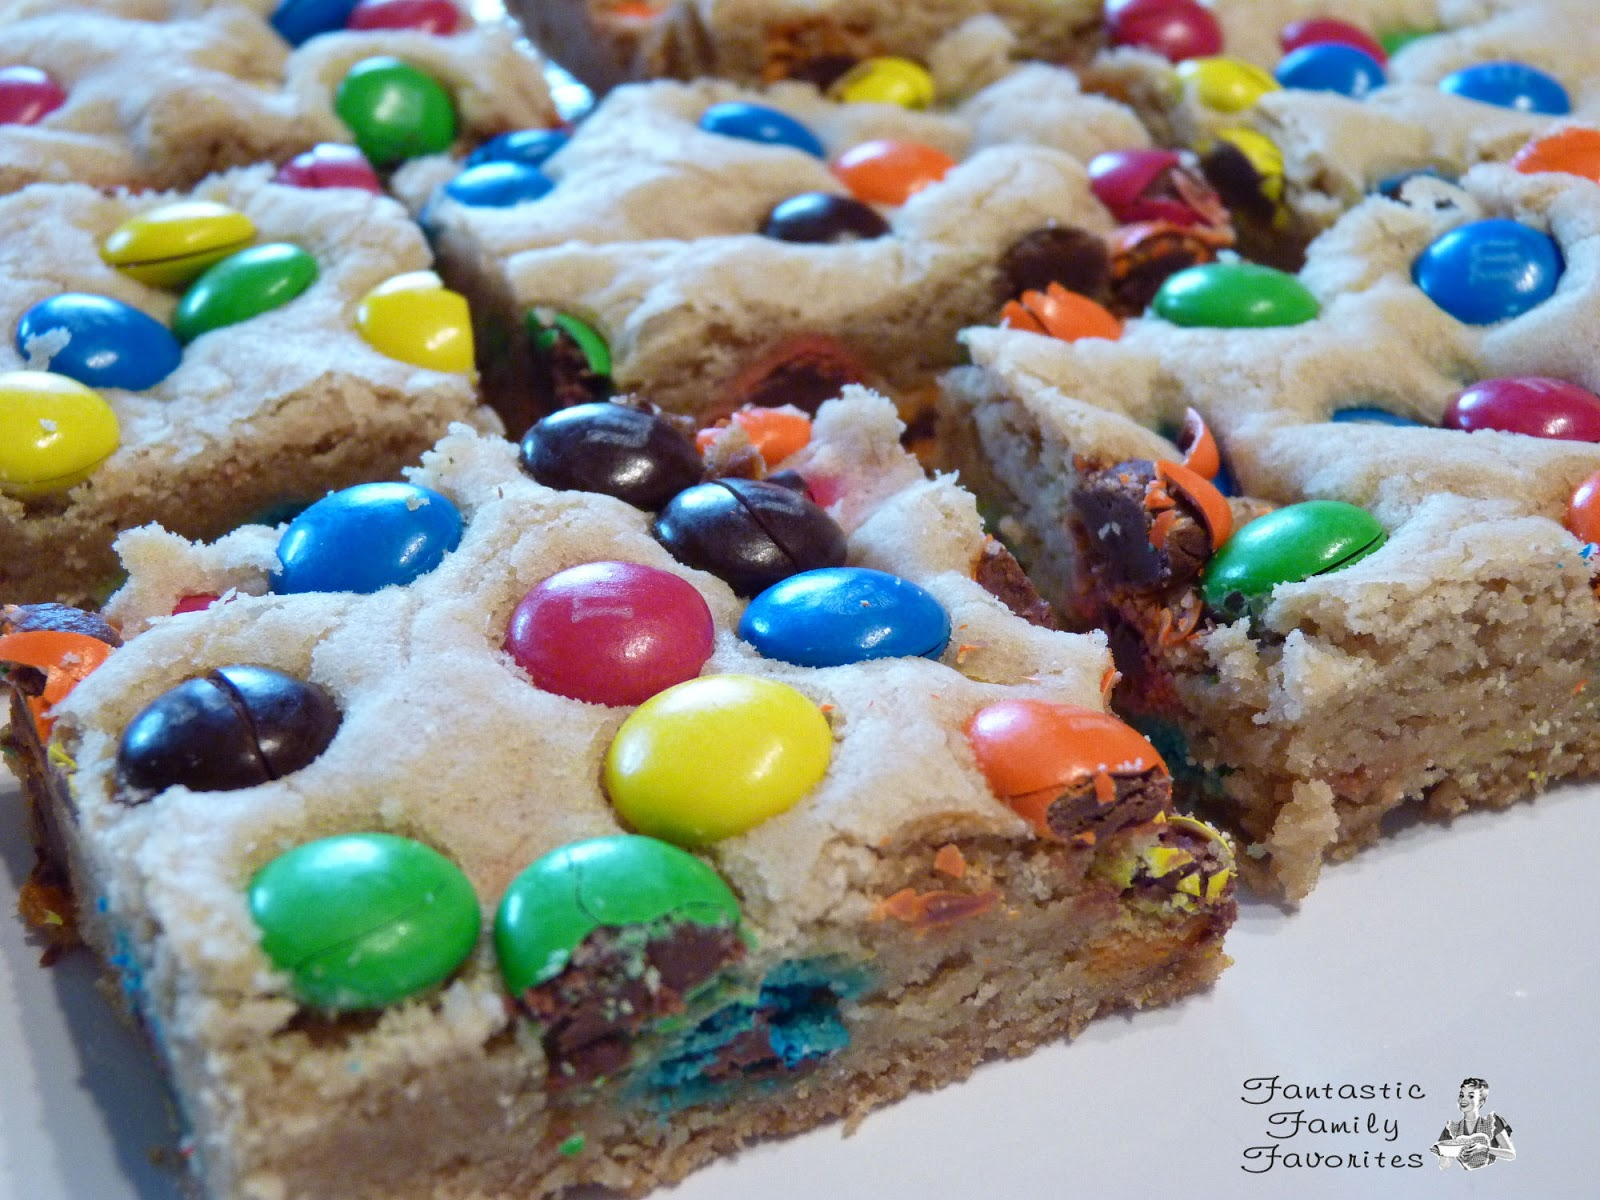 Fantastic Family Favorites Thick and Chewy M&M Cookie Bars